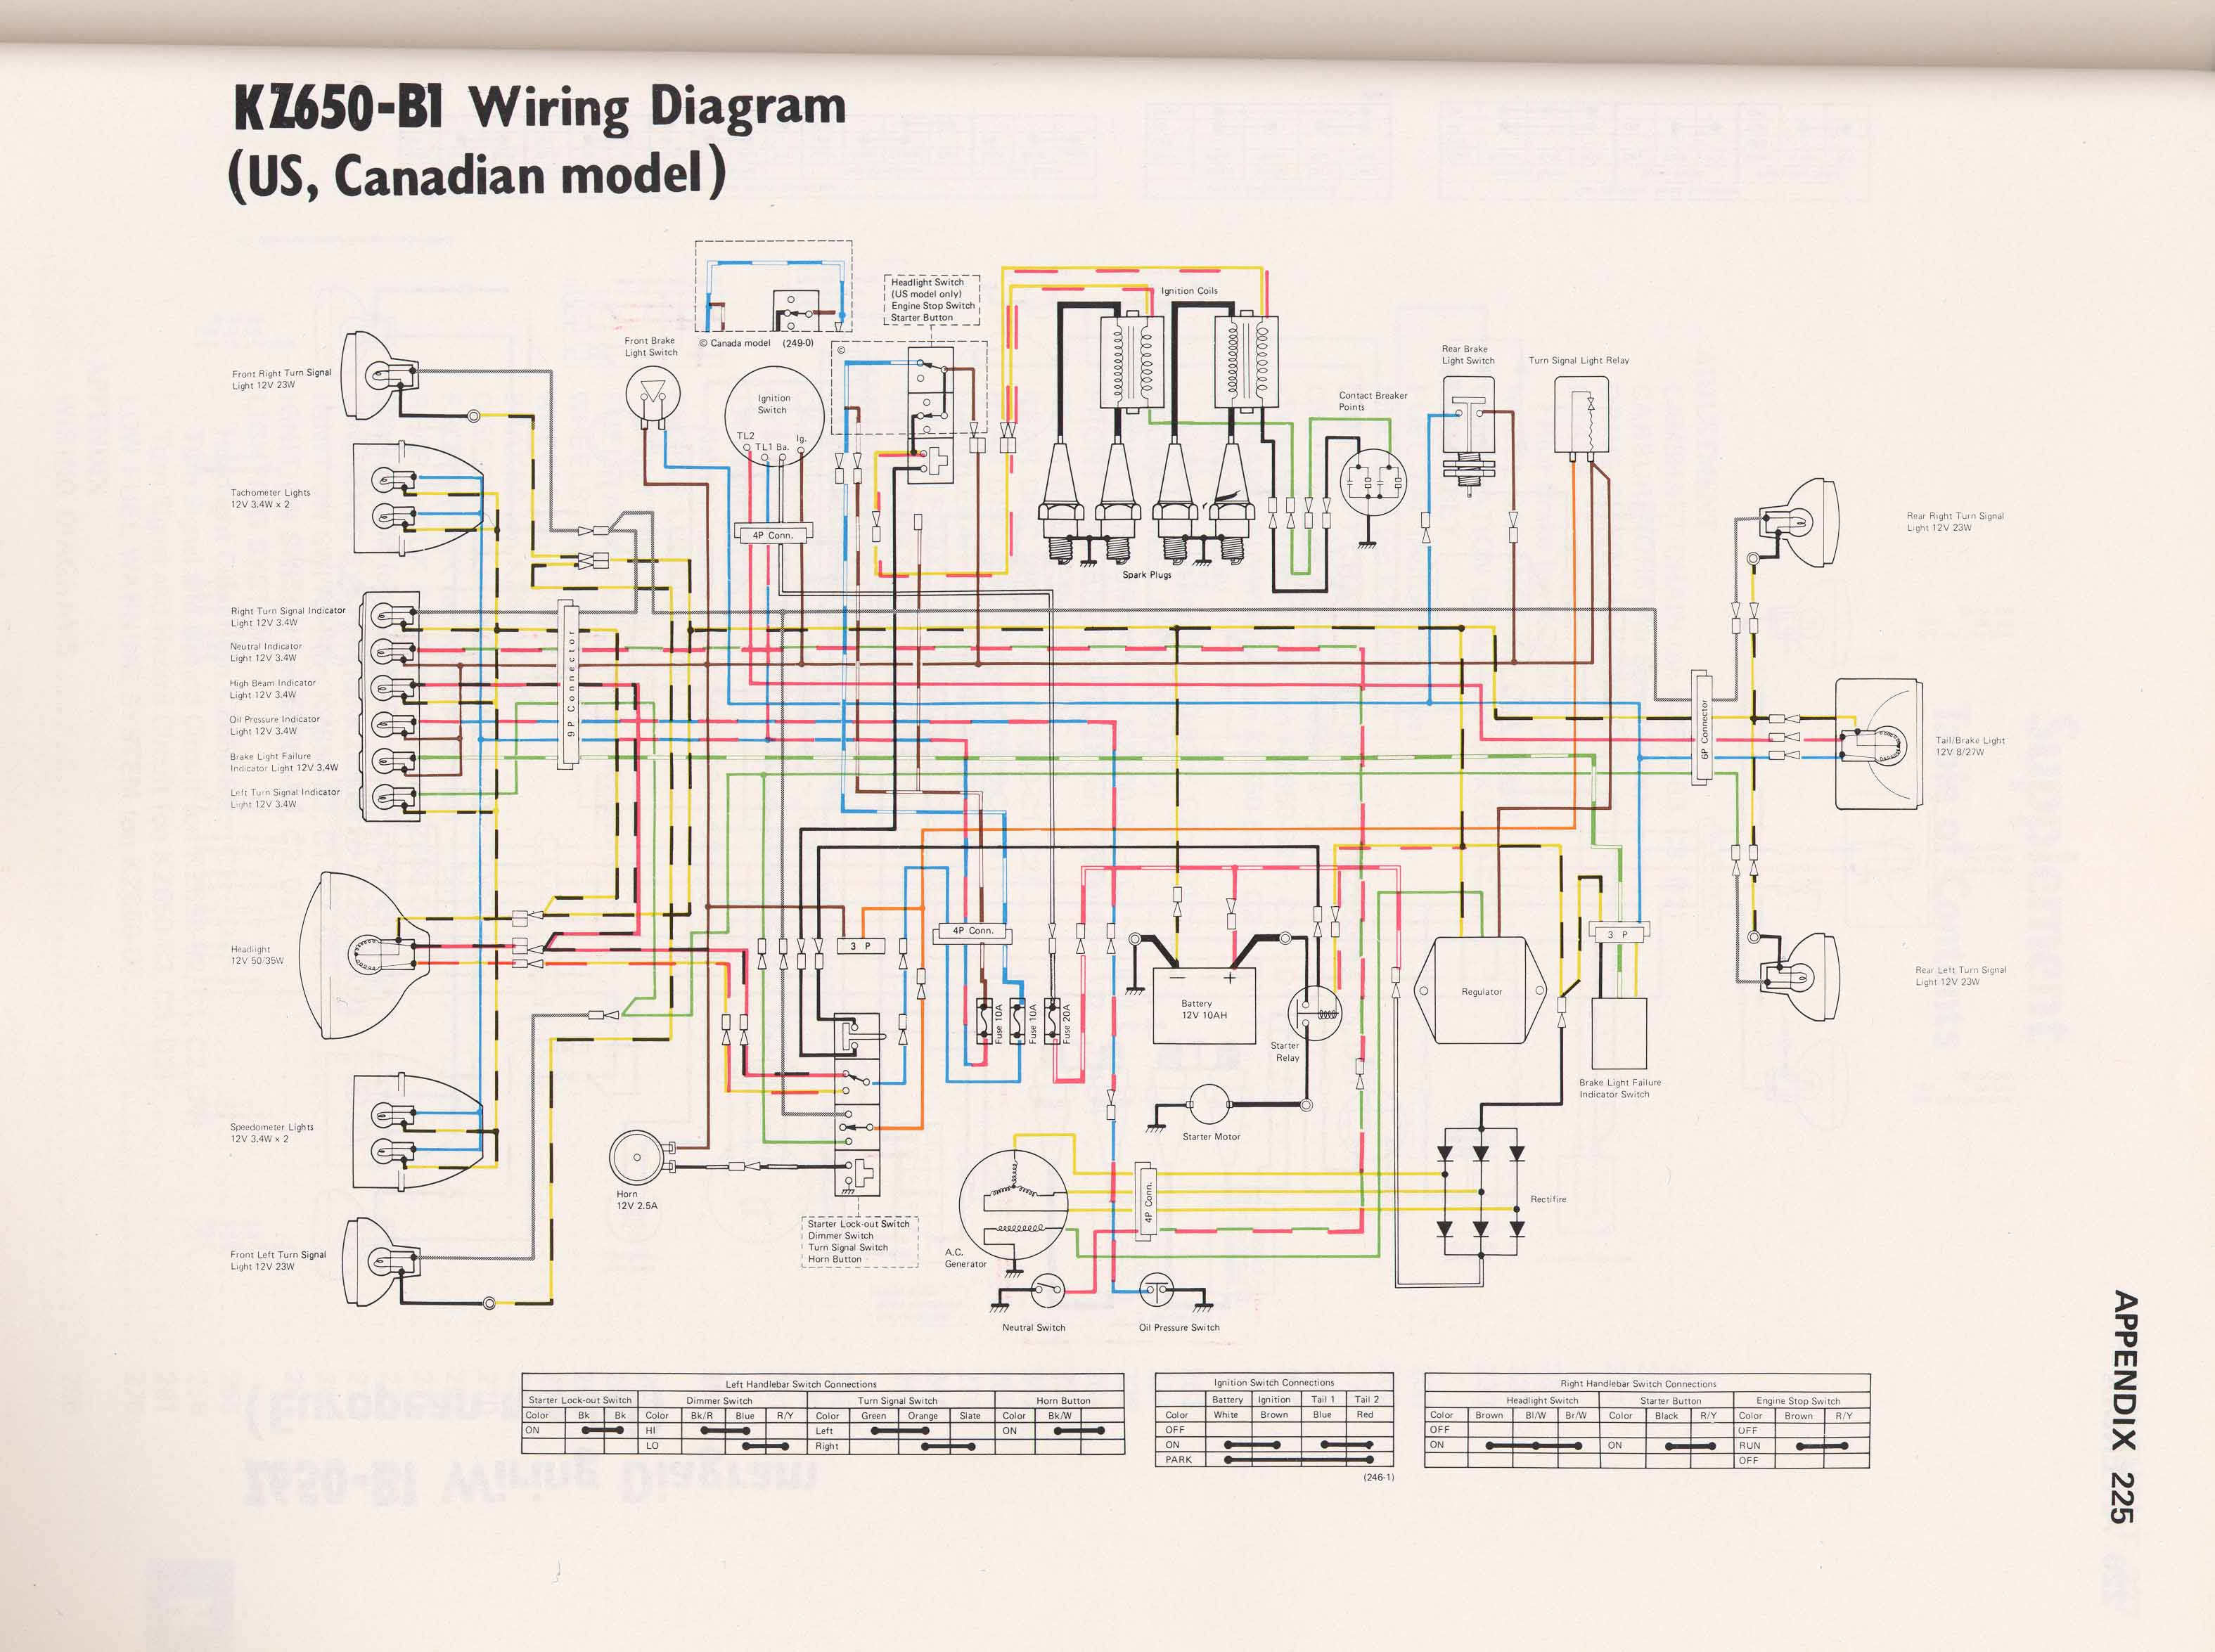 KZ650 B1 kz650 info wiring diagrams 1978 kz650 wiring harness at crackthecode.co